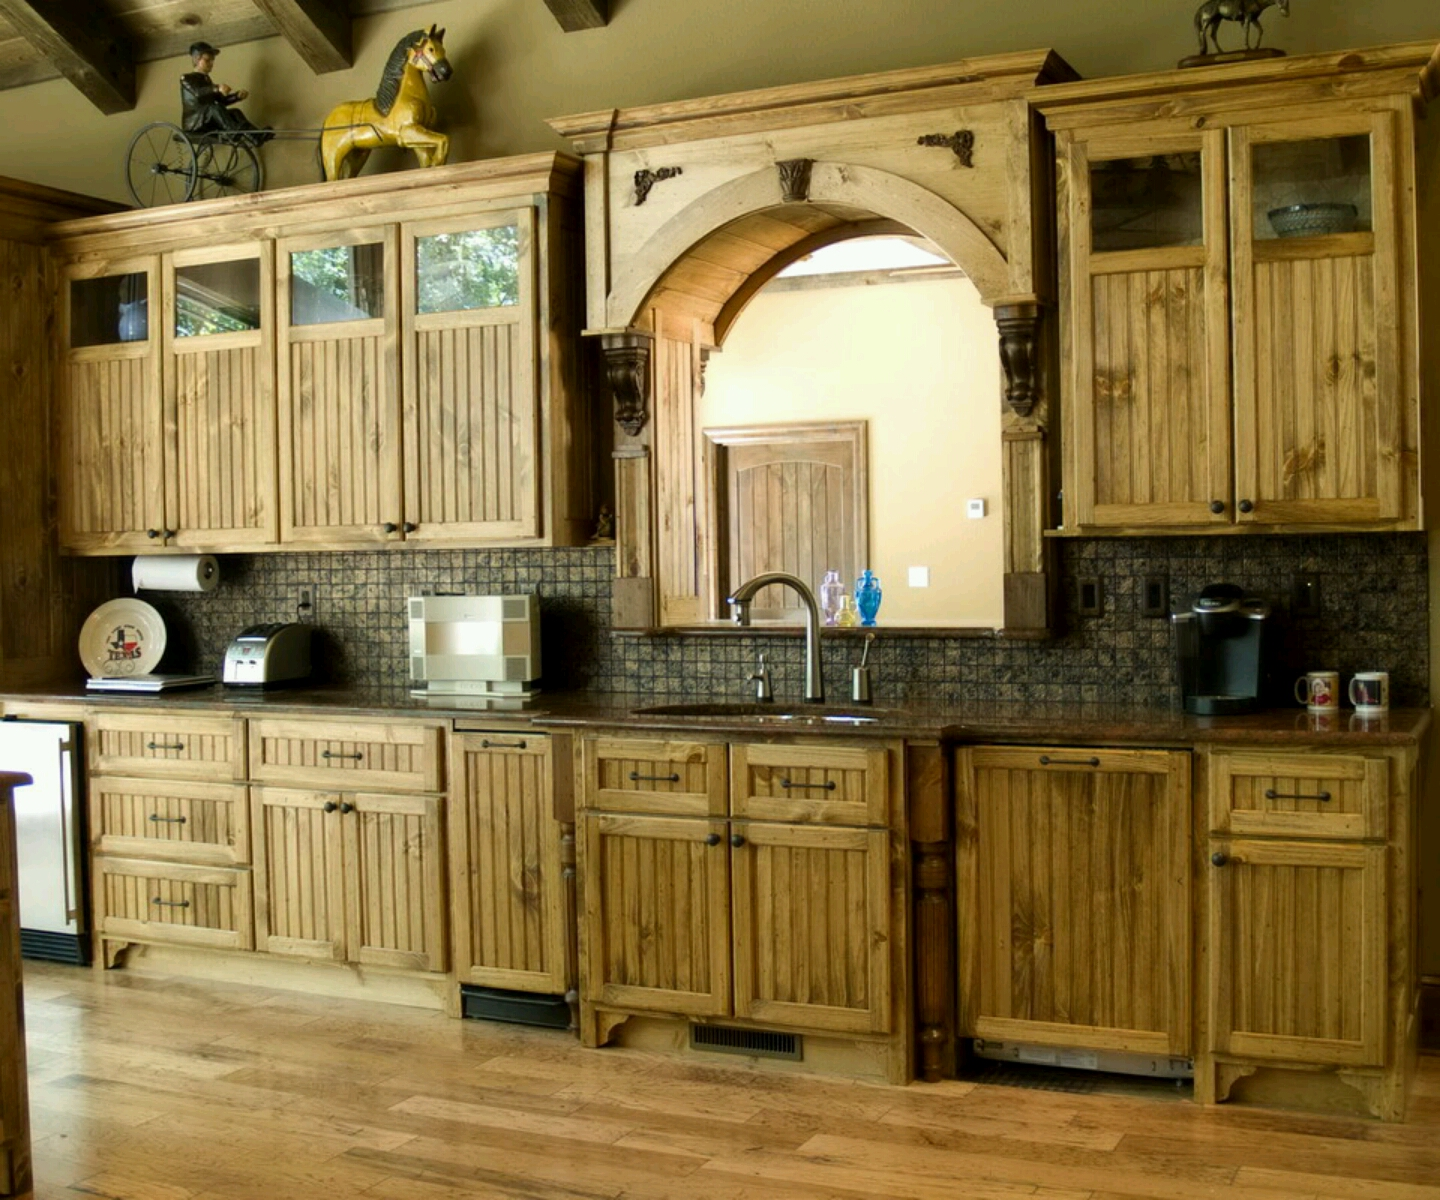 Modern wooden kitchen cabinets designs furniture gallery - Kitchen design wood cabinets ...